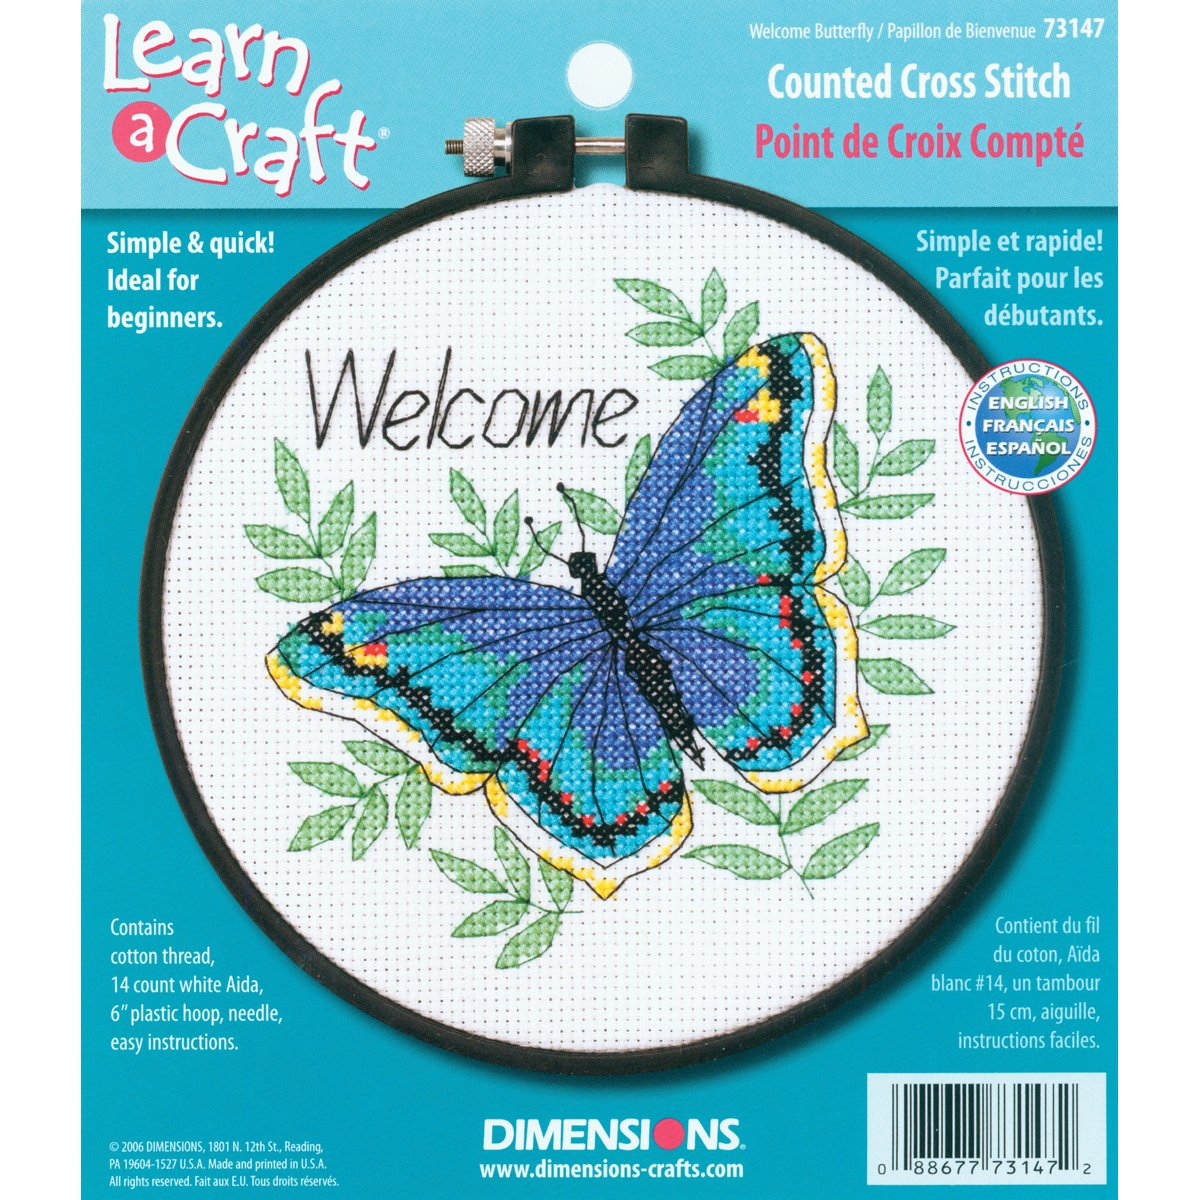 Dimensions 73147 Needlecrafts Counted Cross Stitch Welcome Butterfly